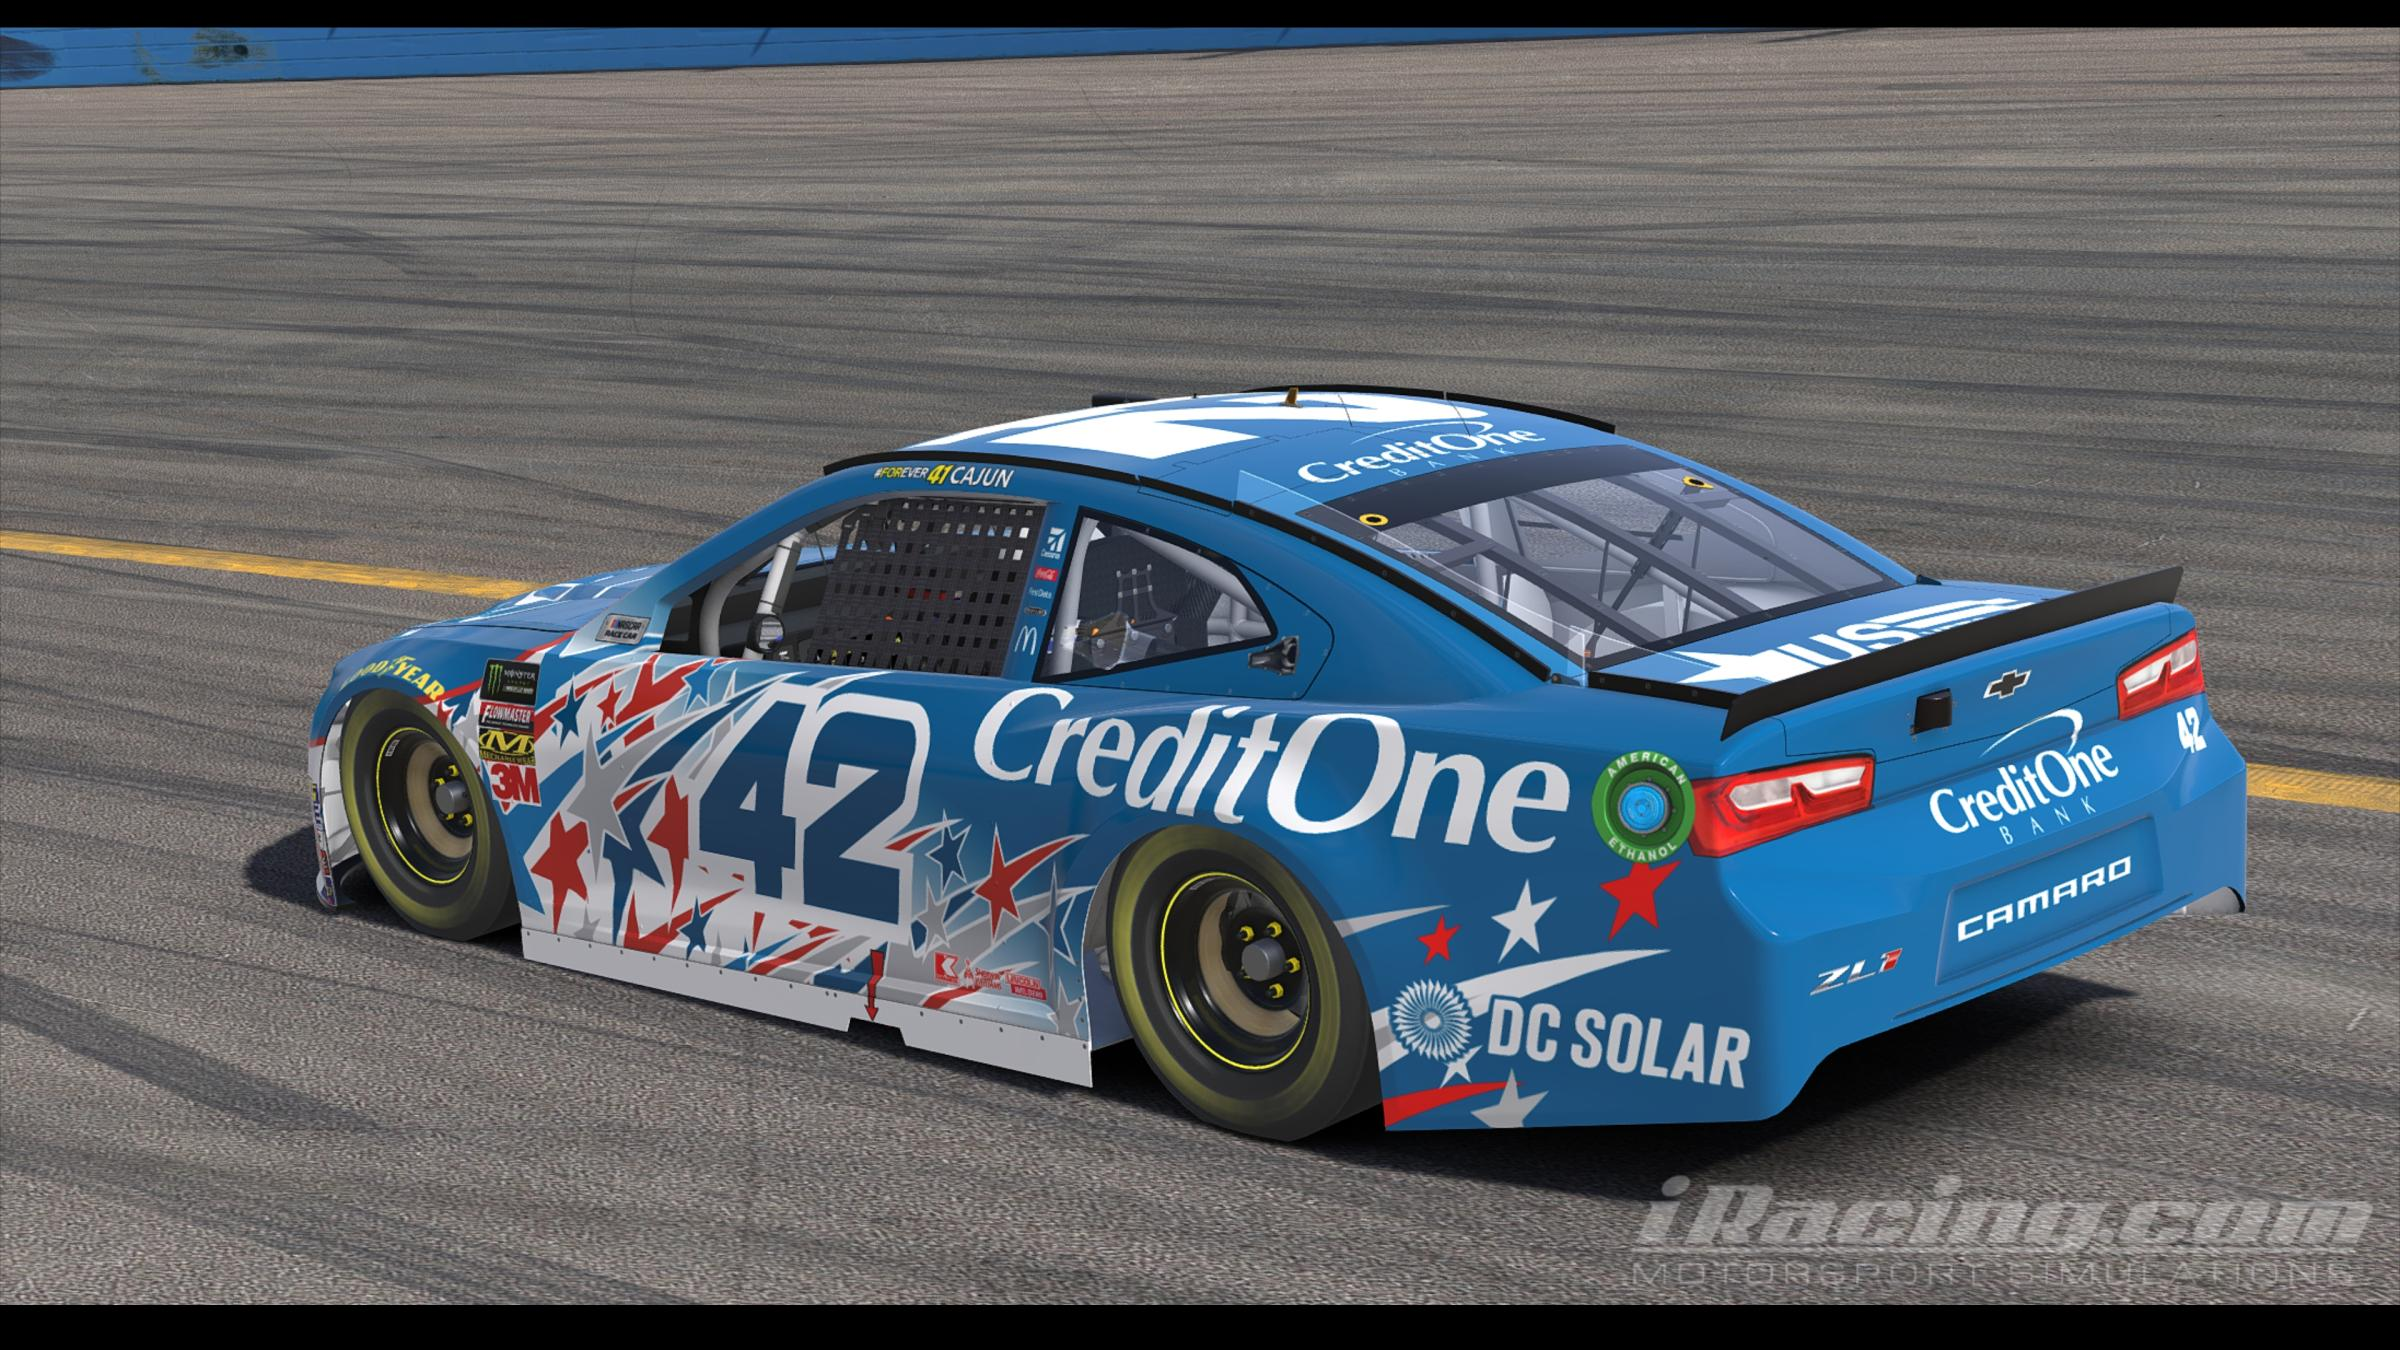 Preview of 2018 Kyle Larson CreditOne Chicagoland by Thomas Sink